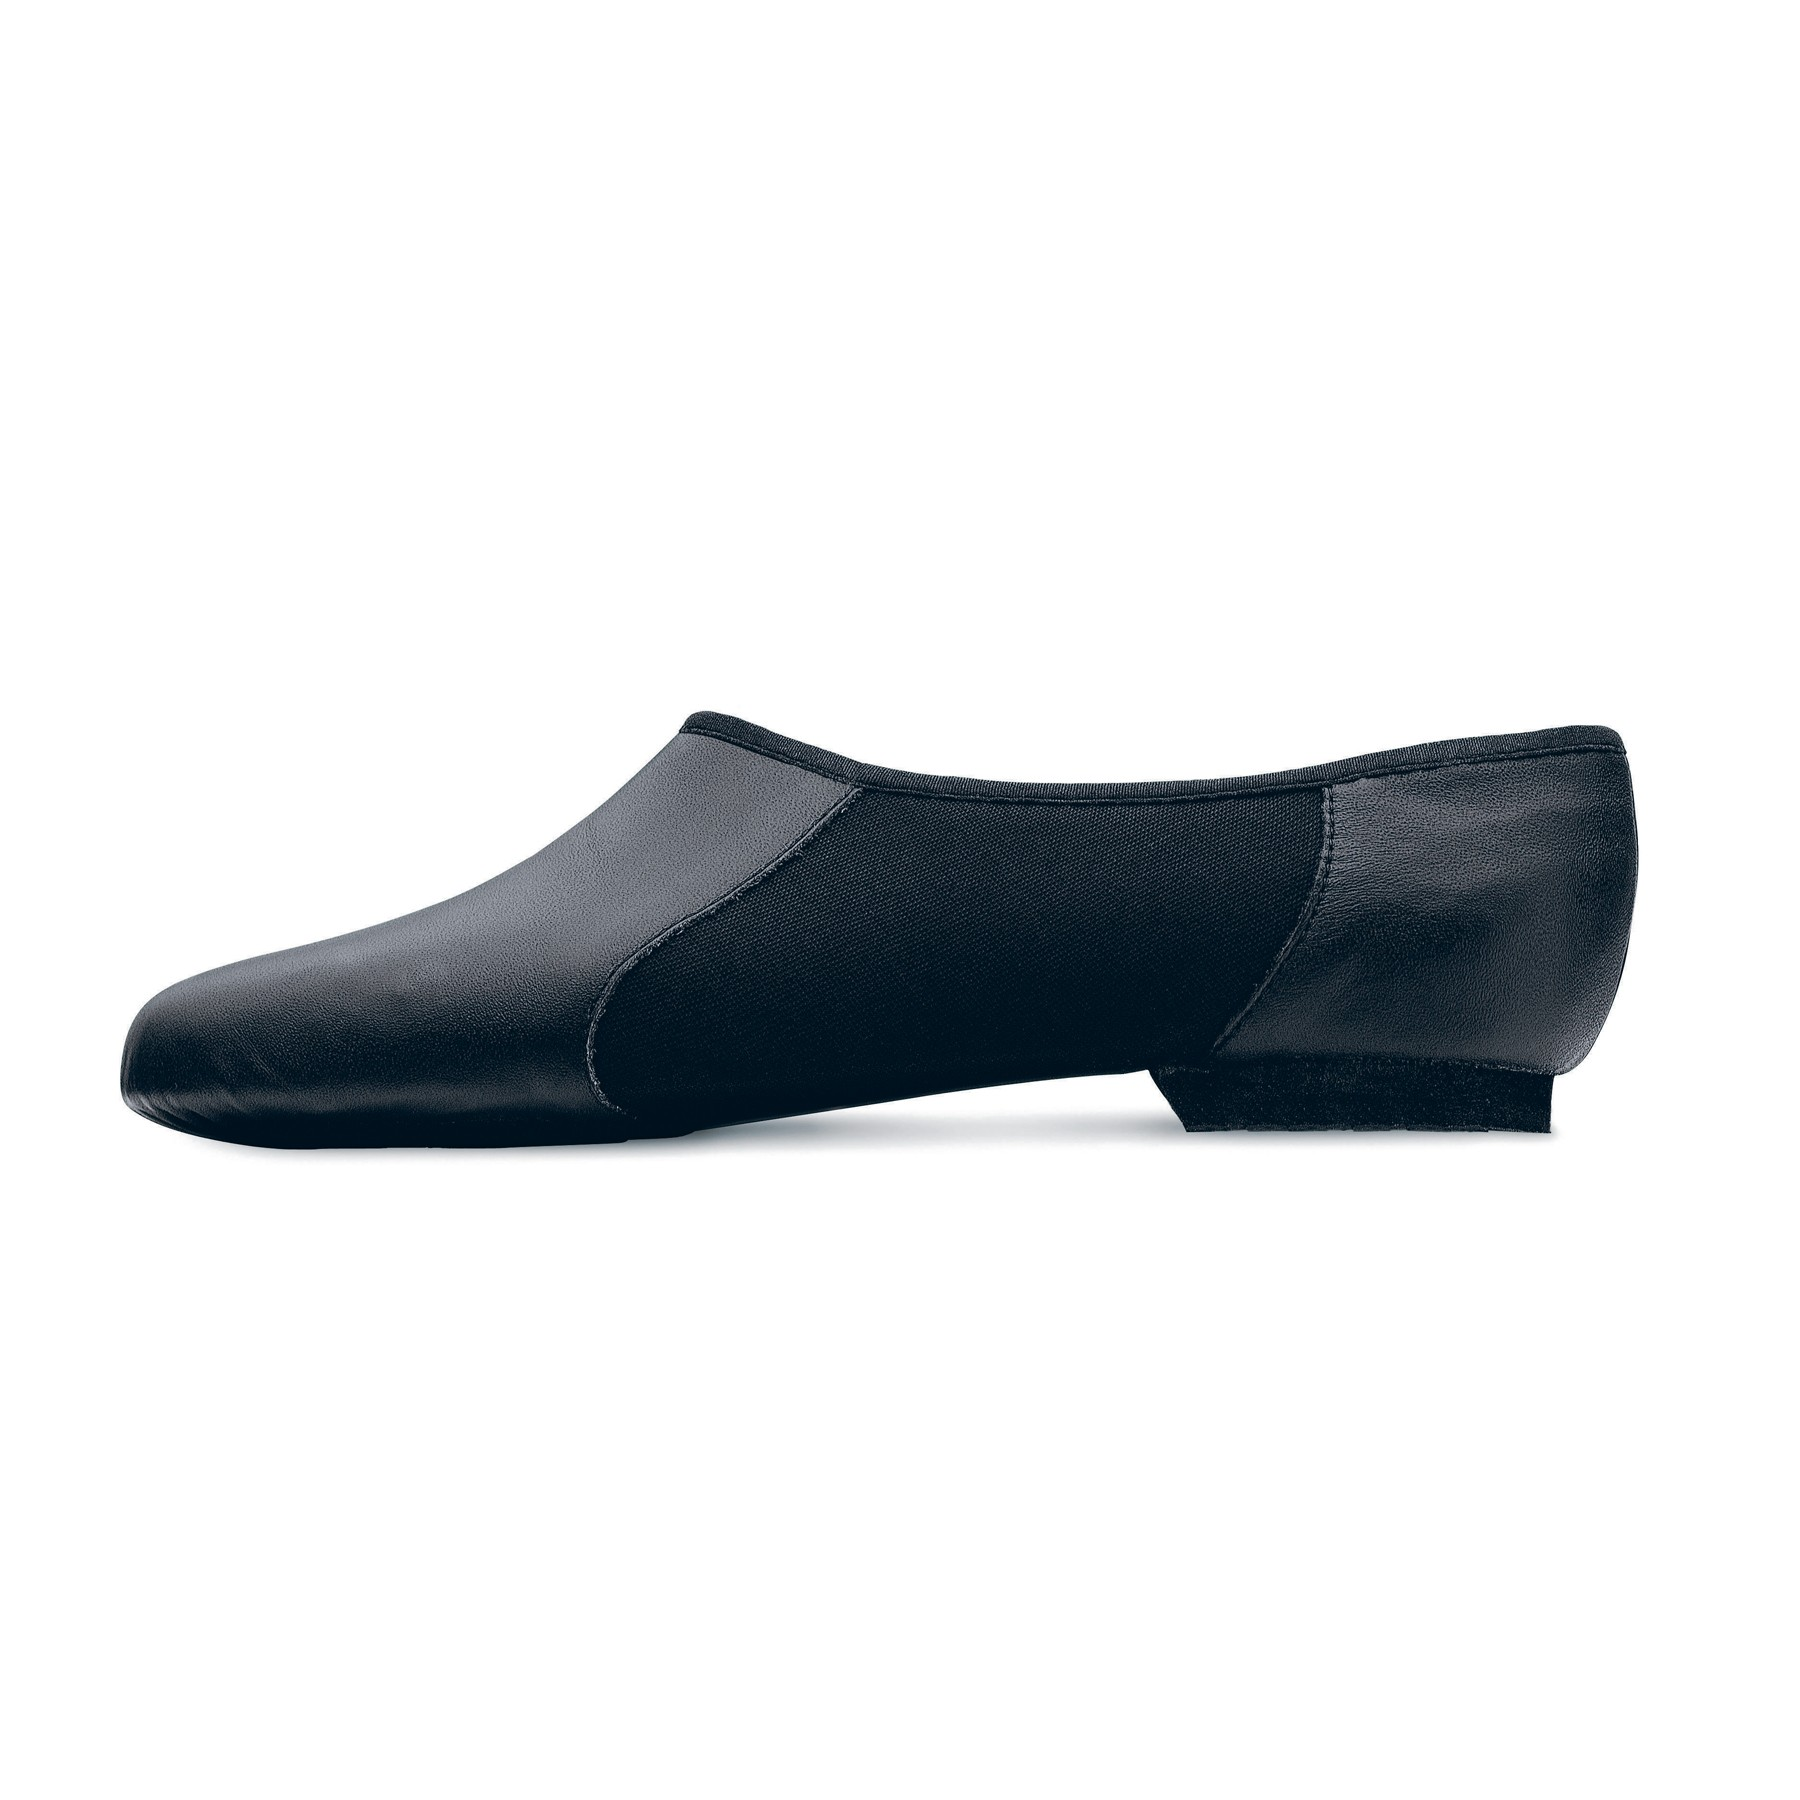 Bloch NEO Flex Slip on Jazz Shoes (Black)